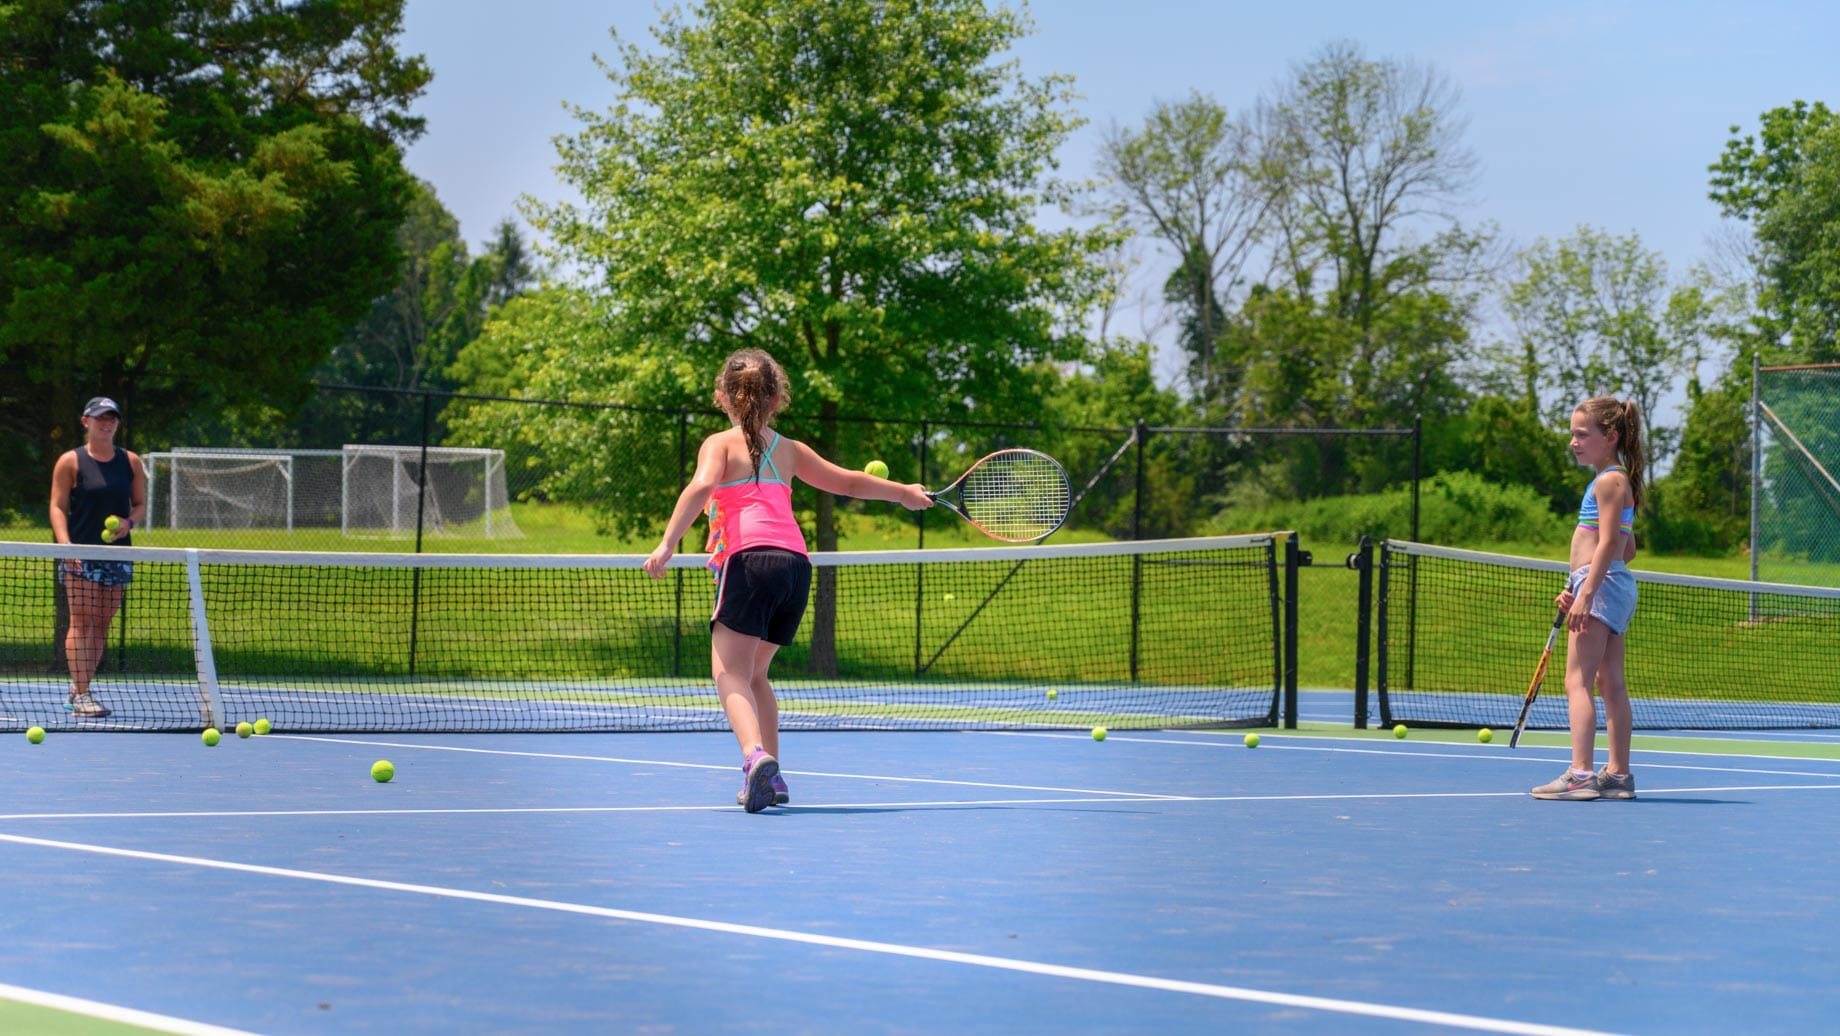 Girls playing tennis on the court